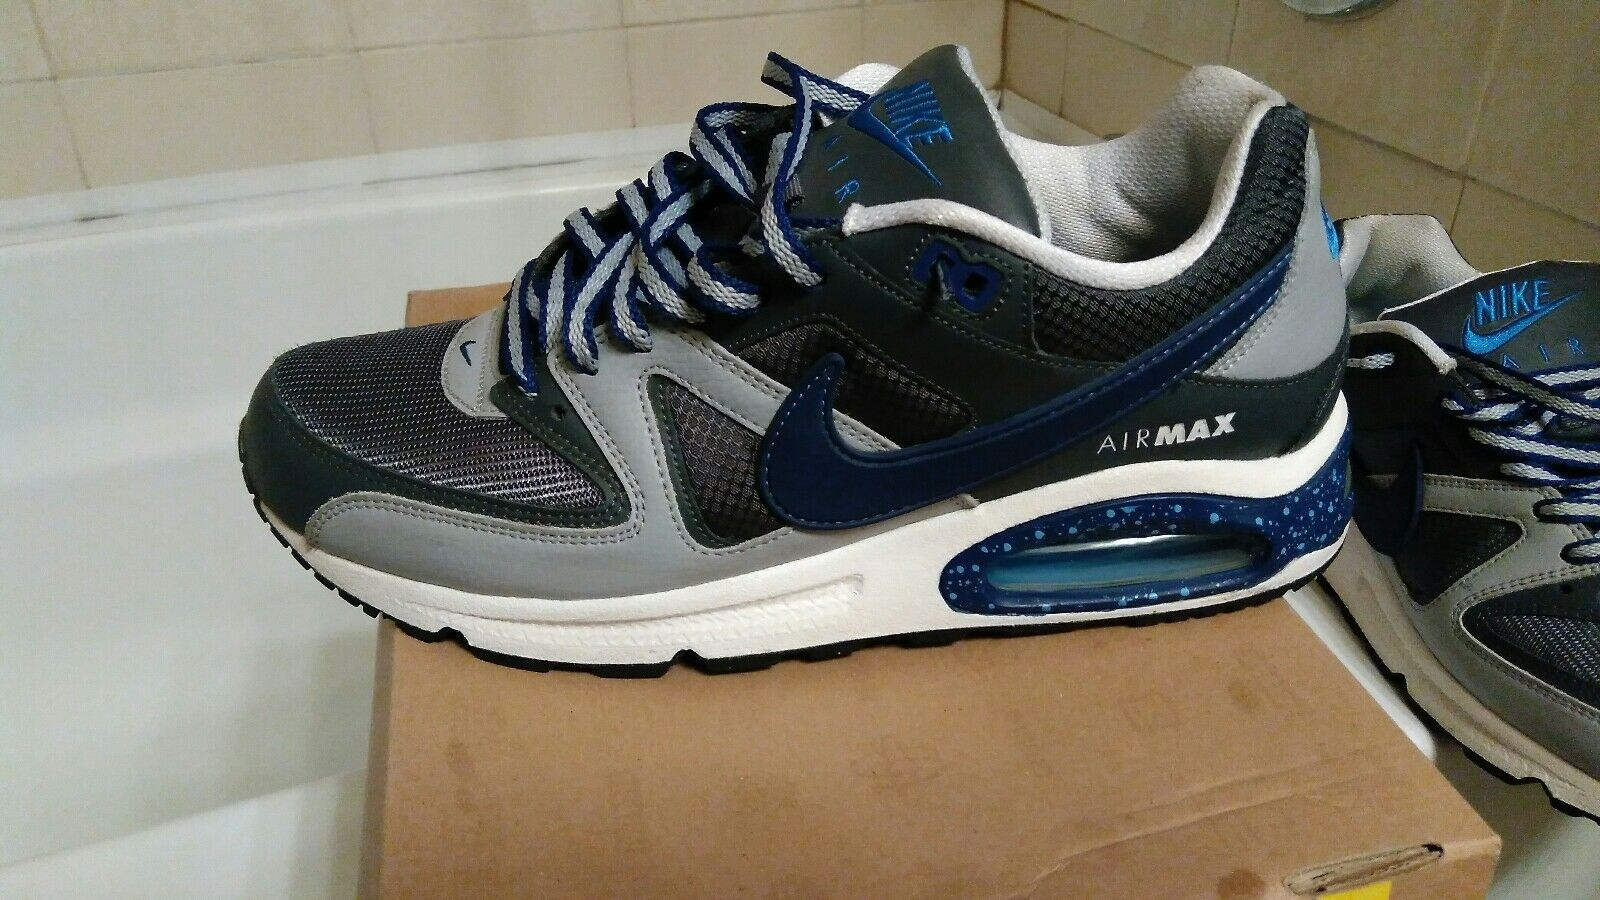 men nike shoes 10.5  Cheap and fashionable